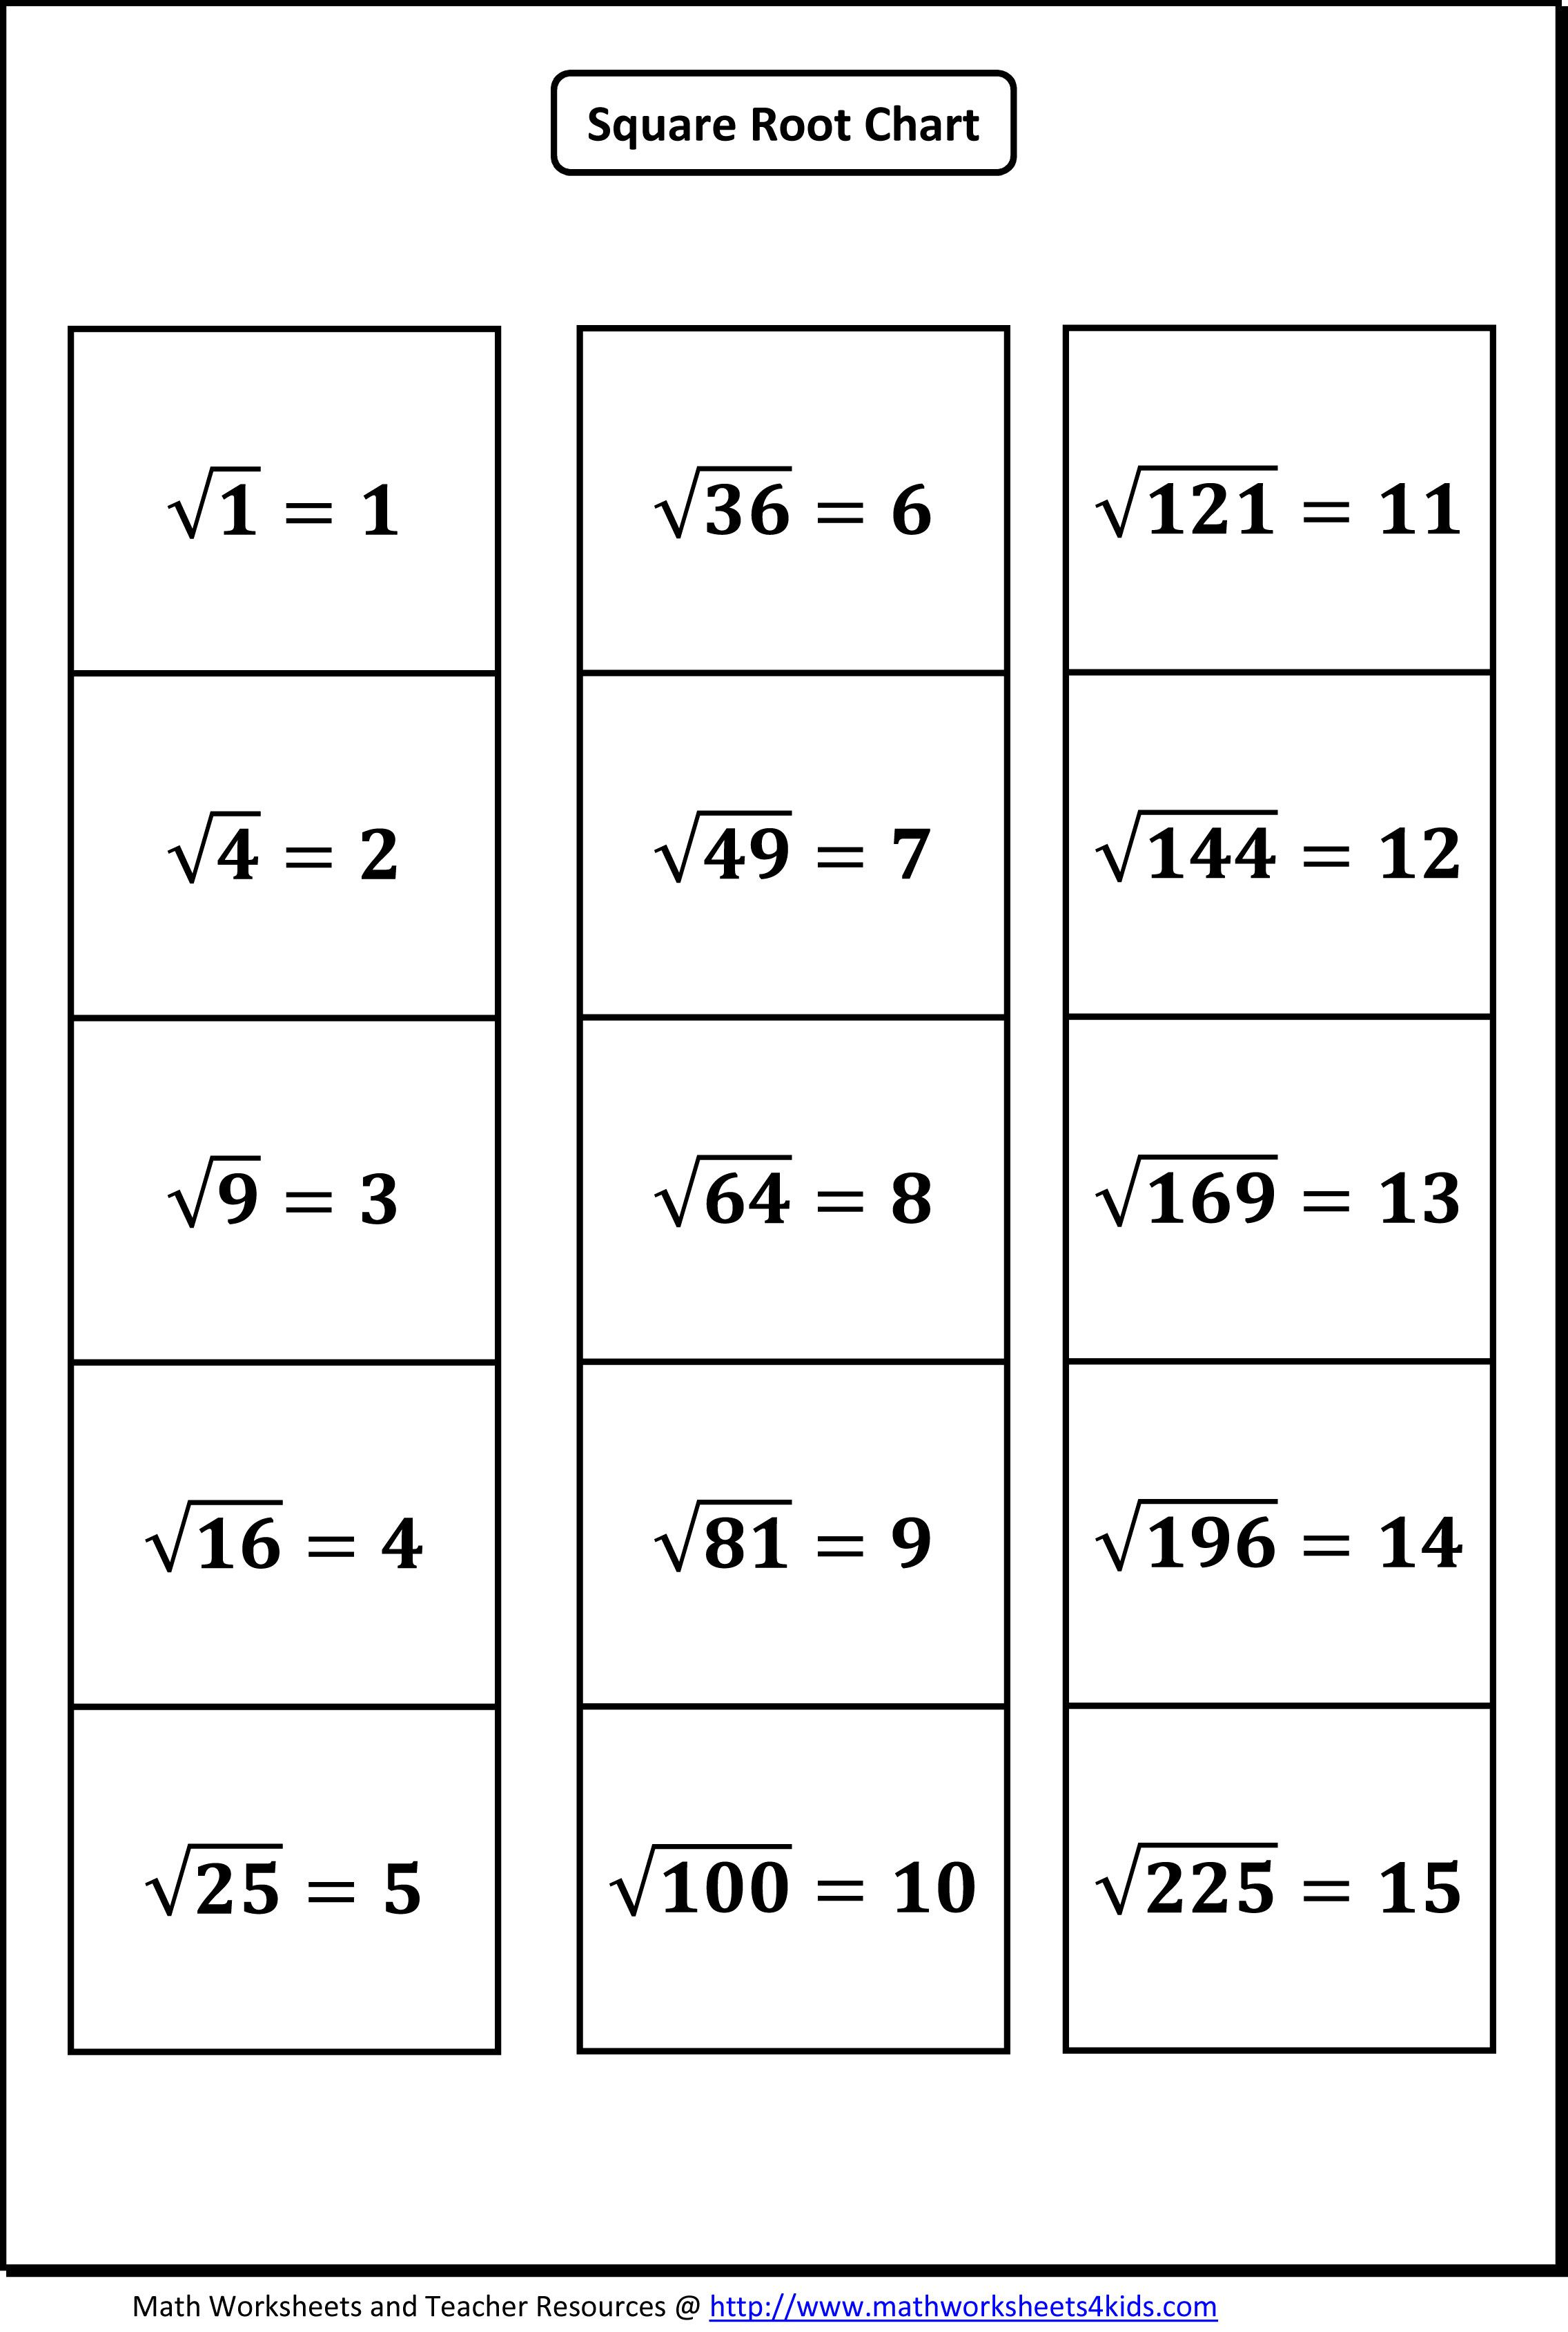 Square Root Worksheets Find The Square Root Of Whole Numbers Fractions And Decimals Square